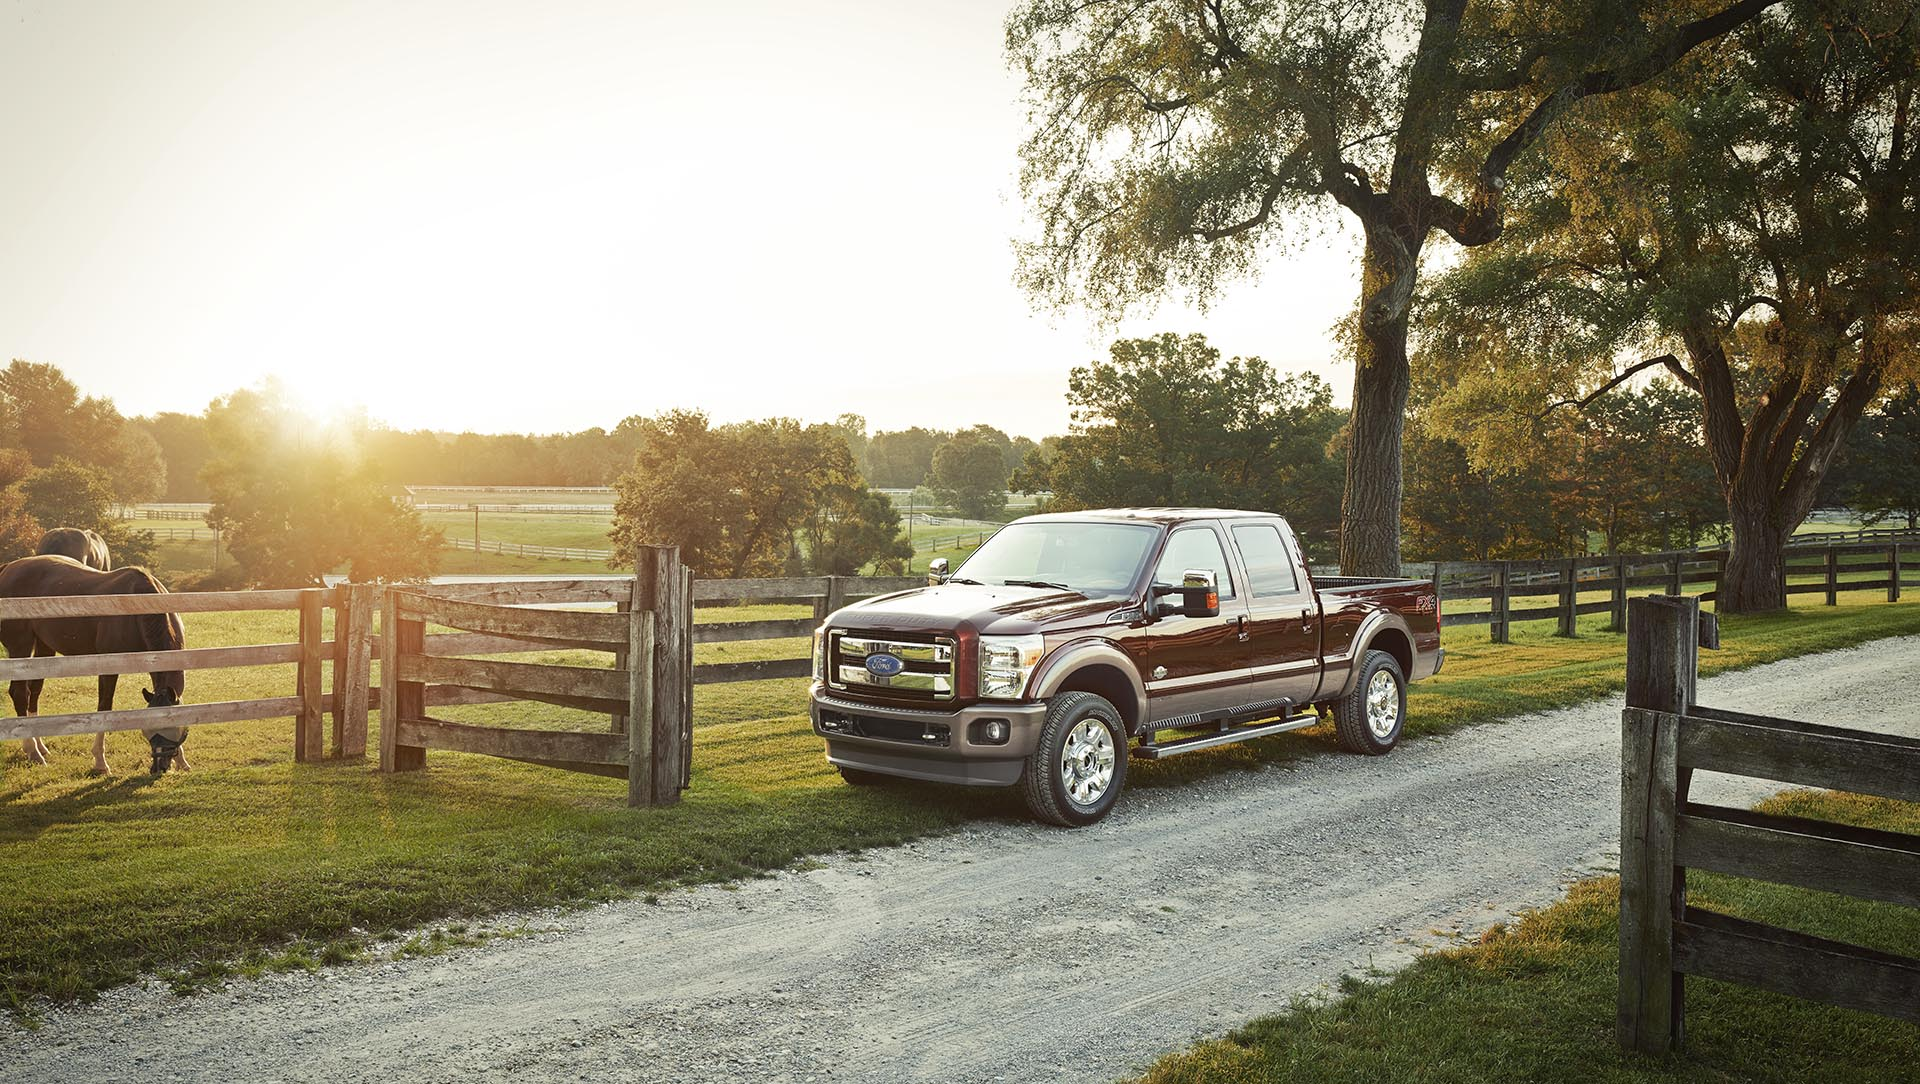 20_Superduty_04_42806_comp_crop_1920pxl_2018